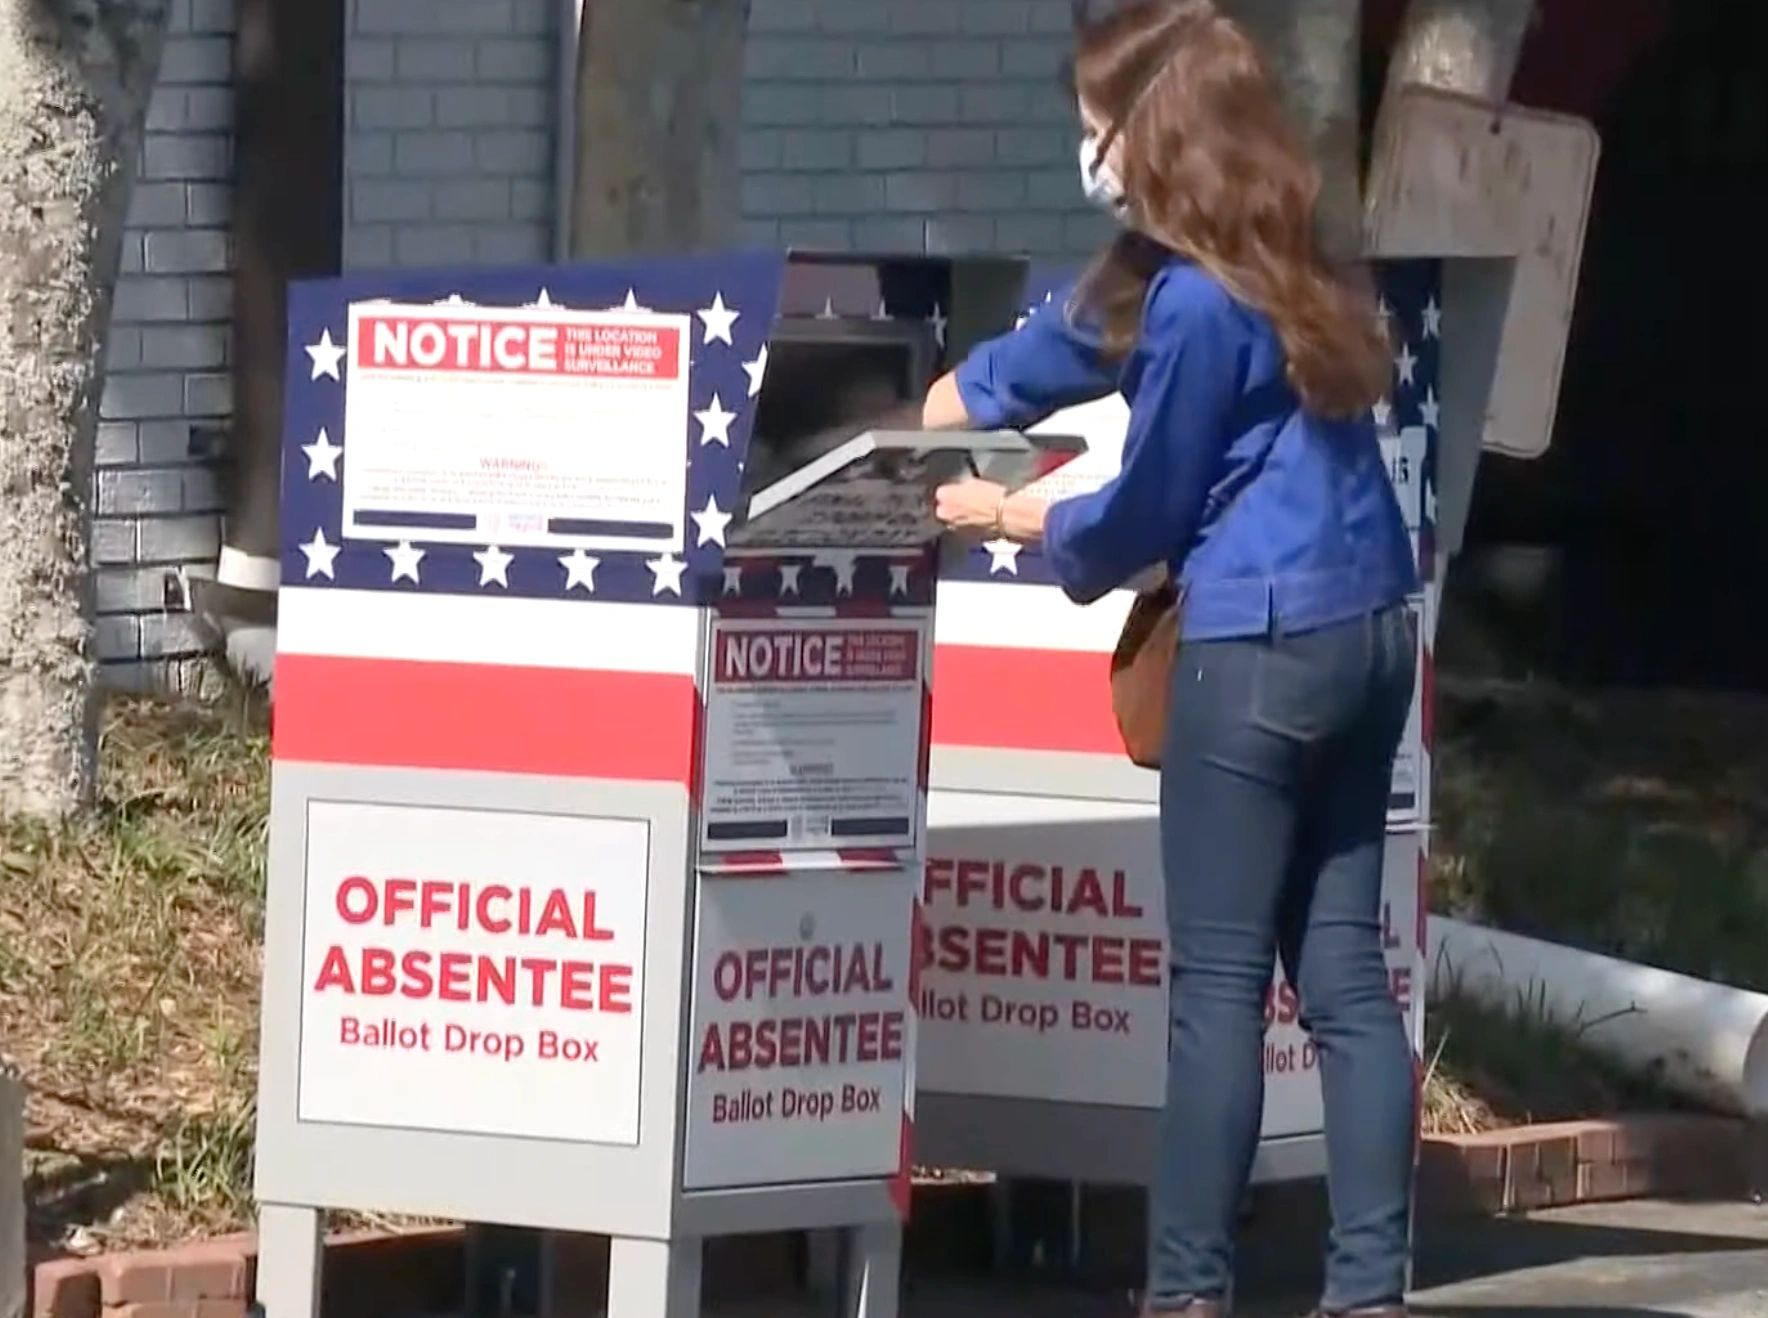 New evidence indicates enough illegal votes in GA to tip 2020